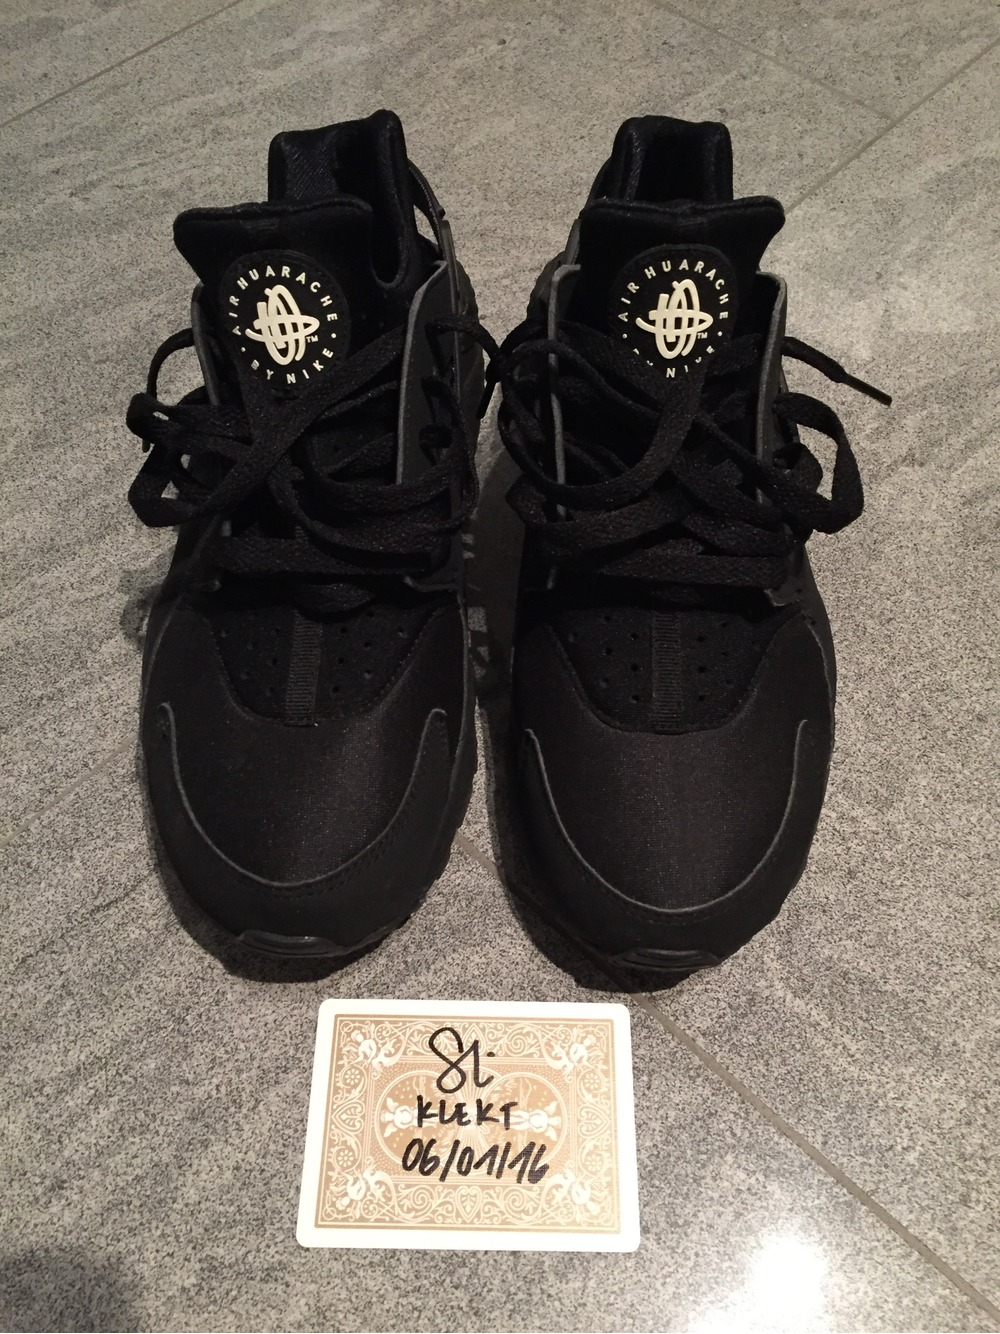 nike air huarache black 8.5